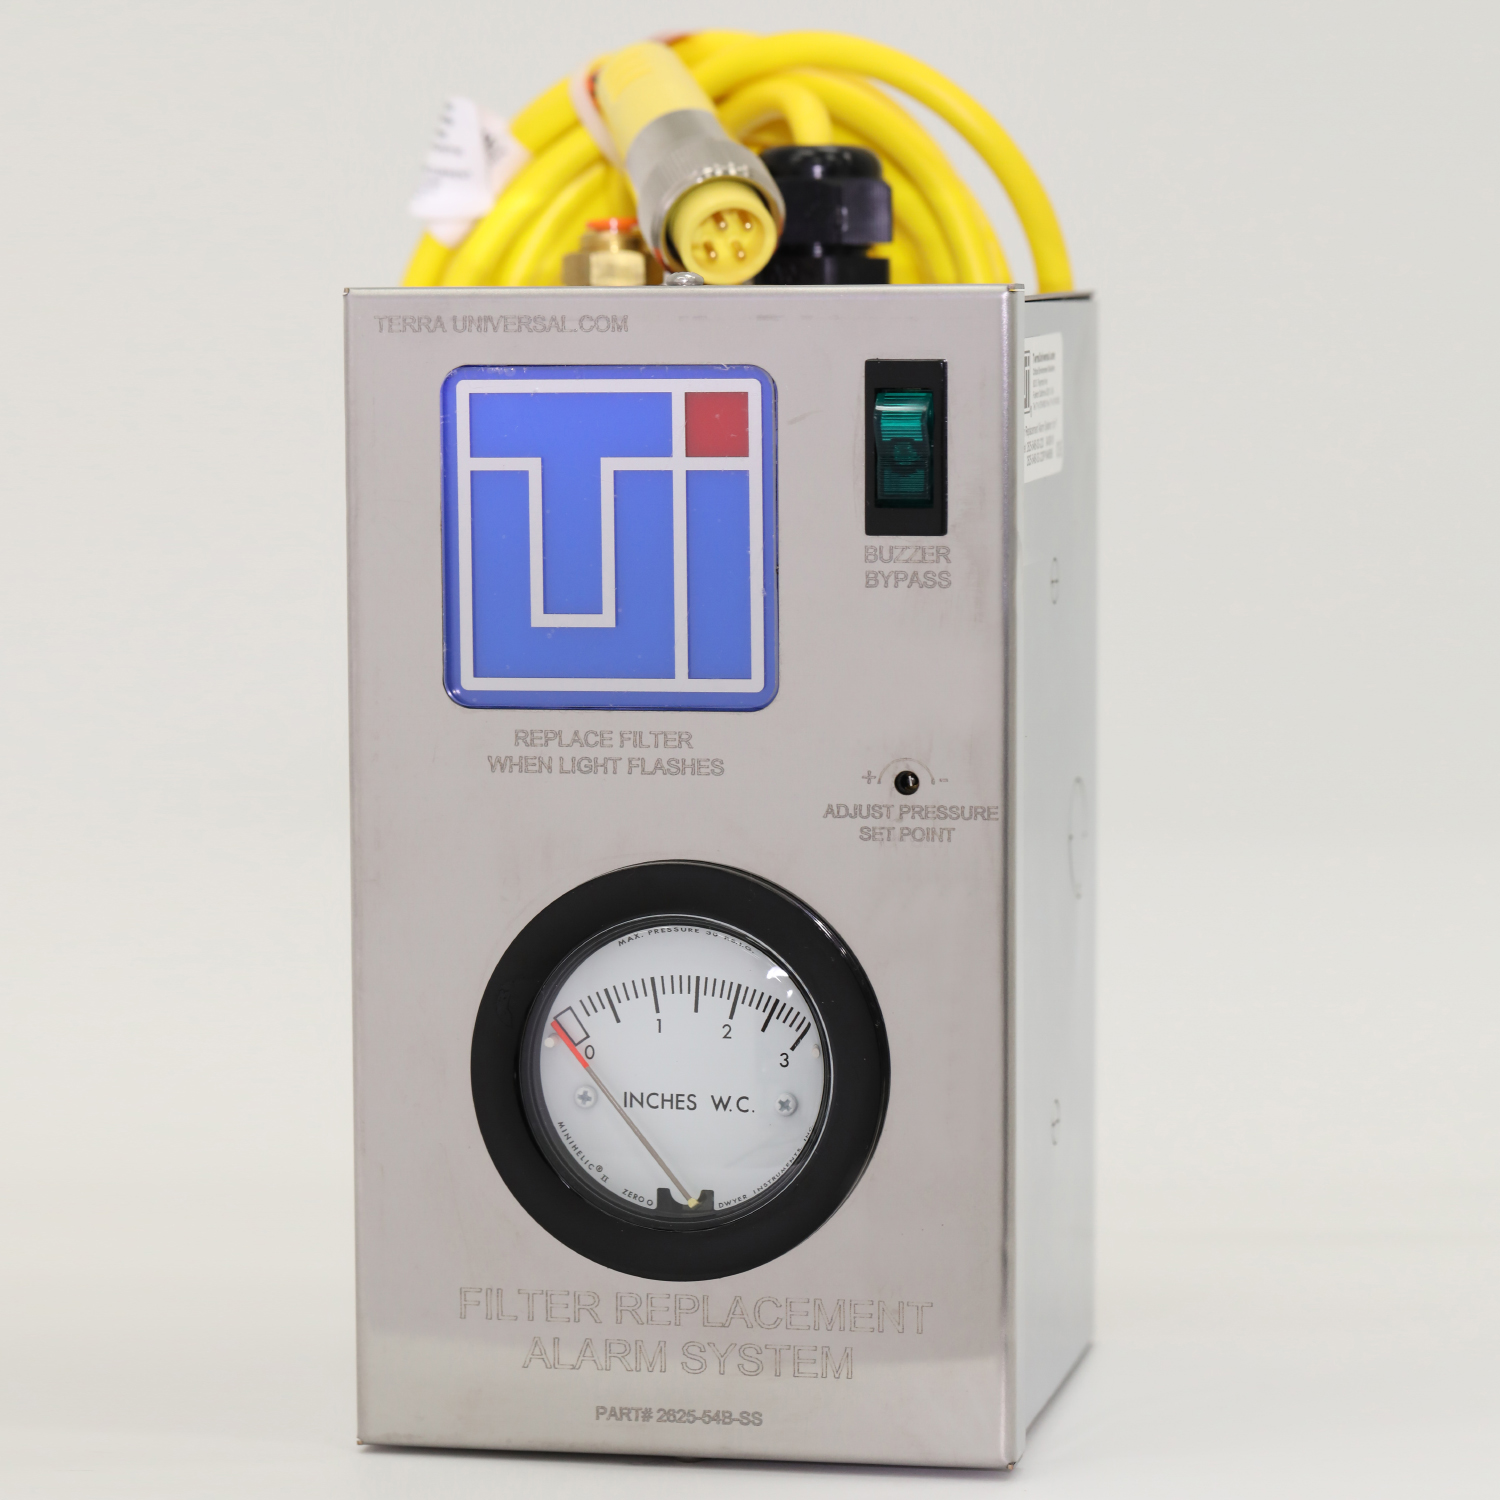 Filter Replacement Alarm System